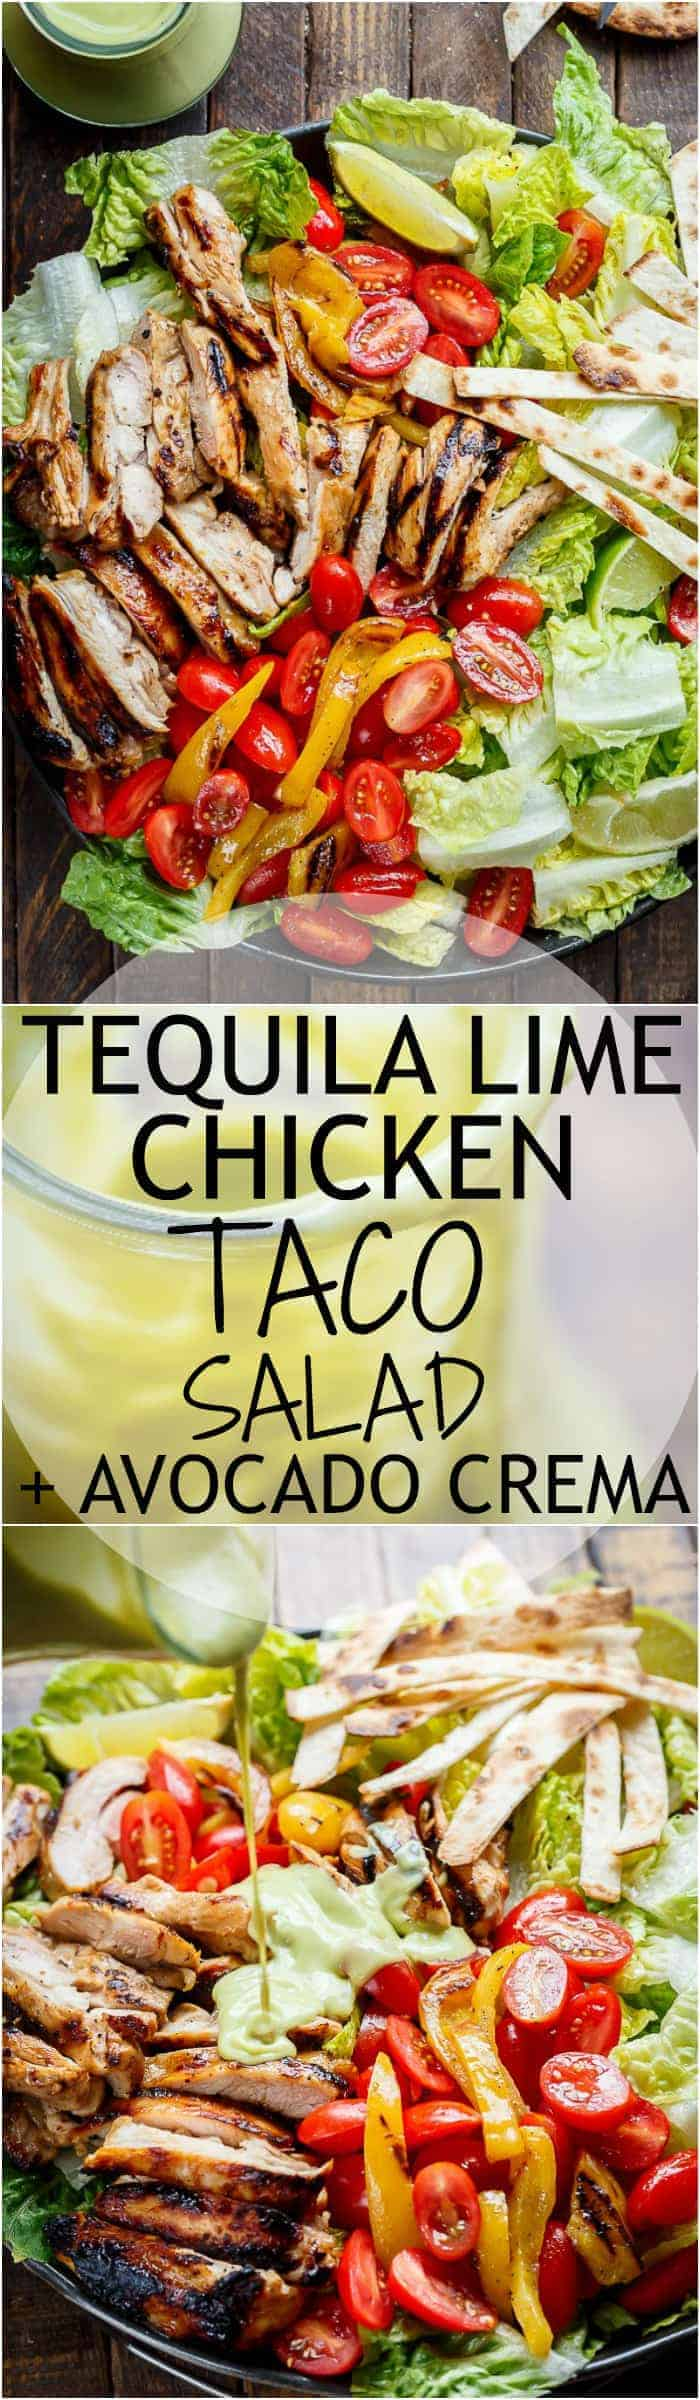 Tequila Lime Chicken Taco Salad with an Avocado Crema spiked with honey, lime and booze. Complete with tortilla strips, have a chicken taco in a salad! | https://cafedelites.com